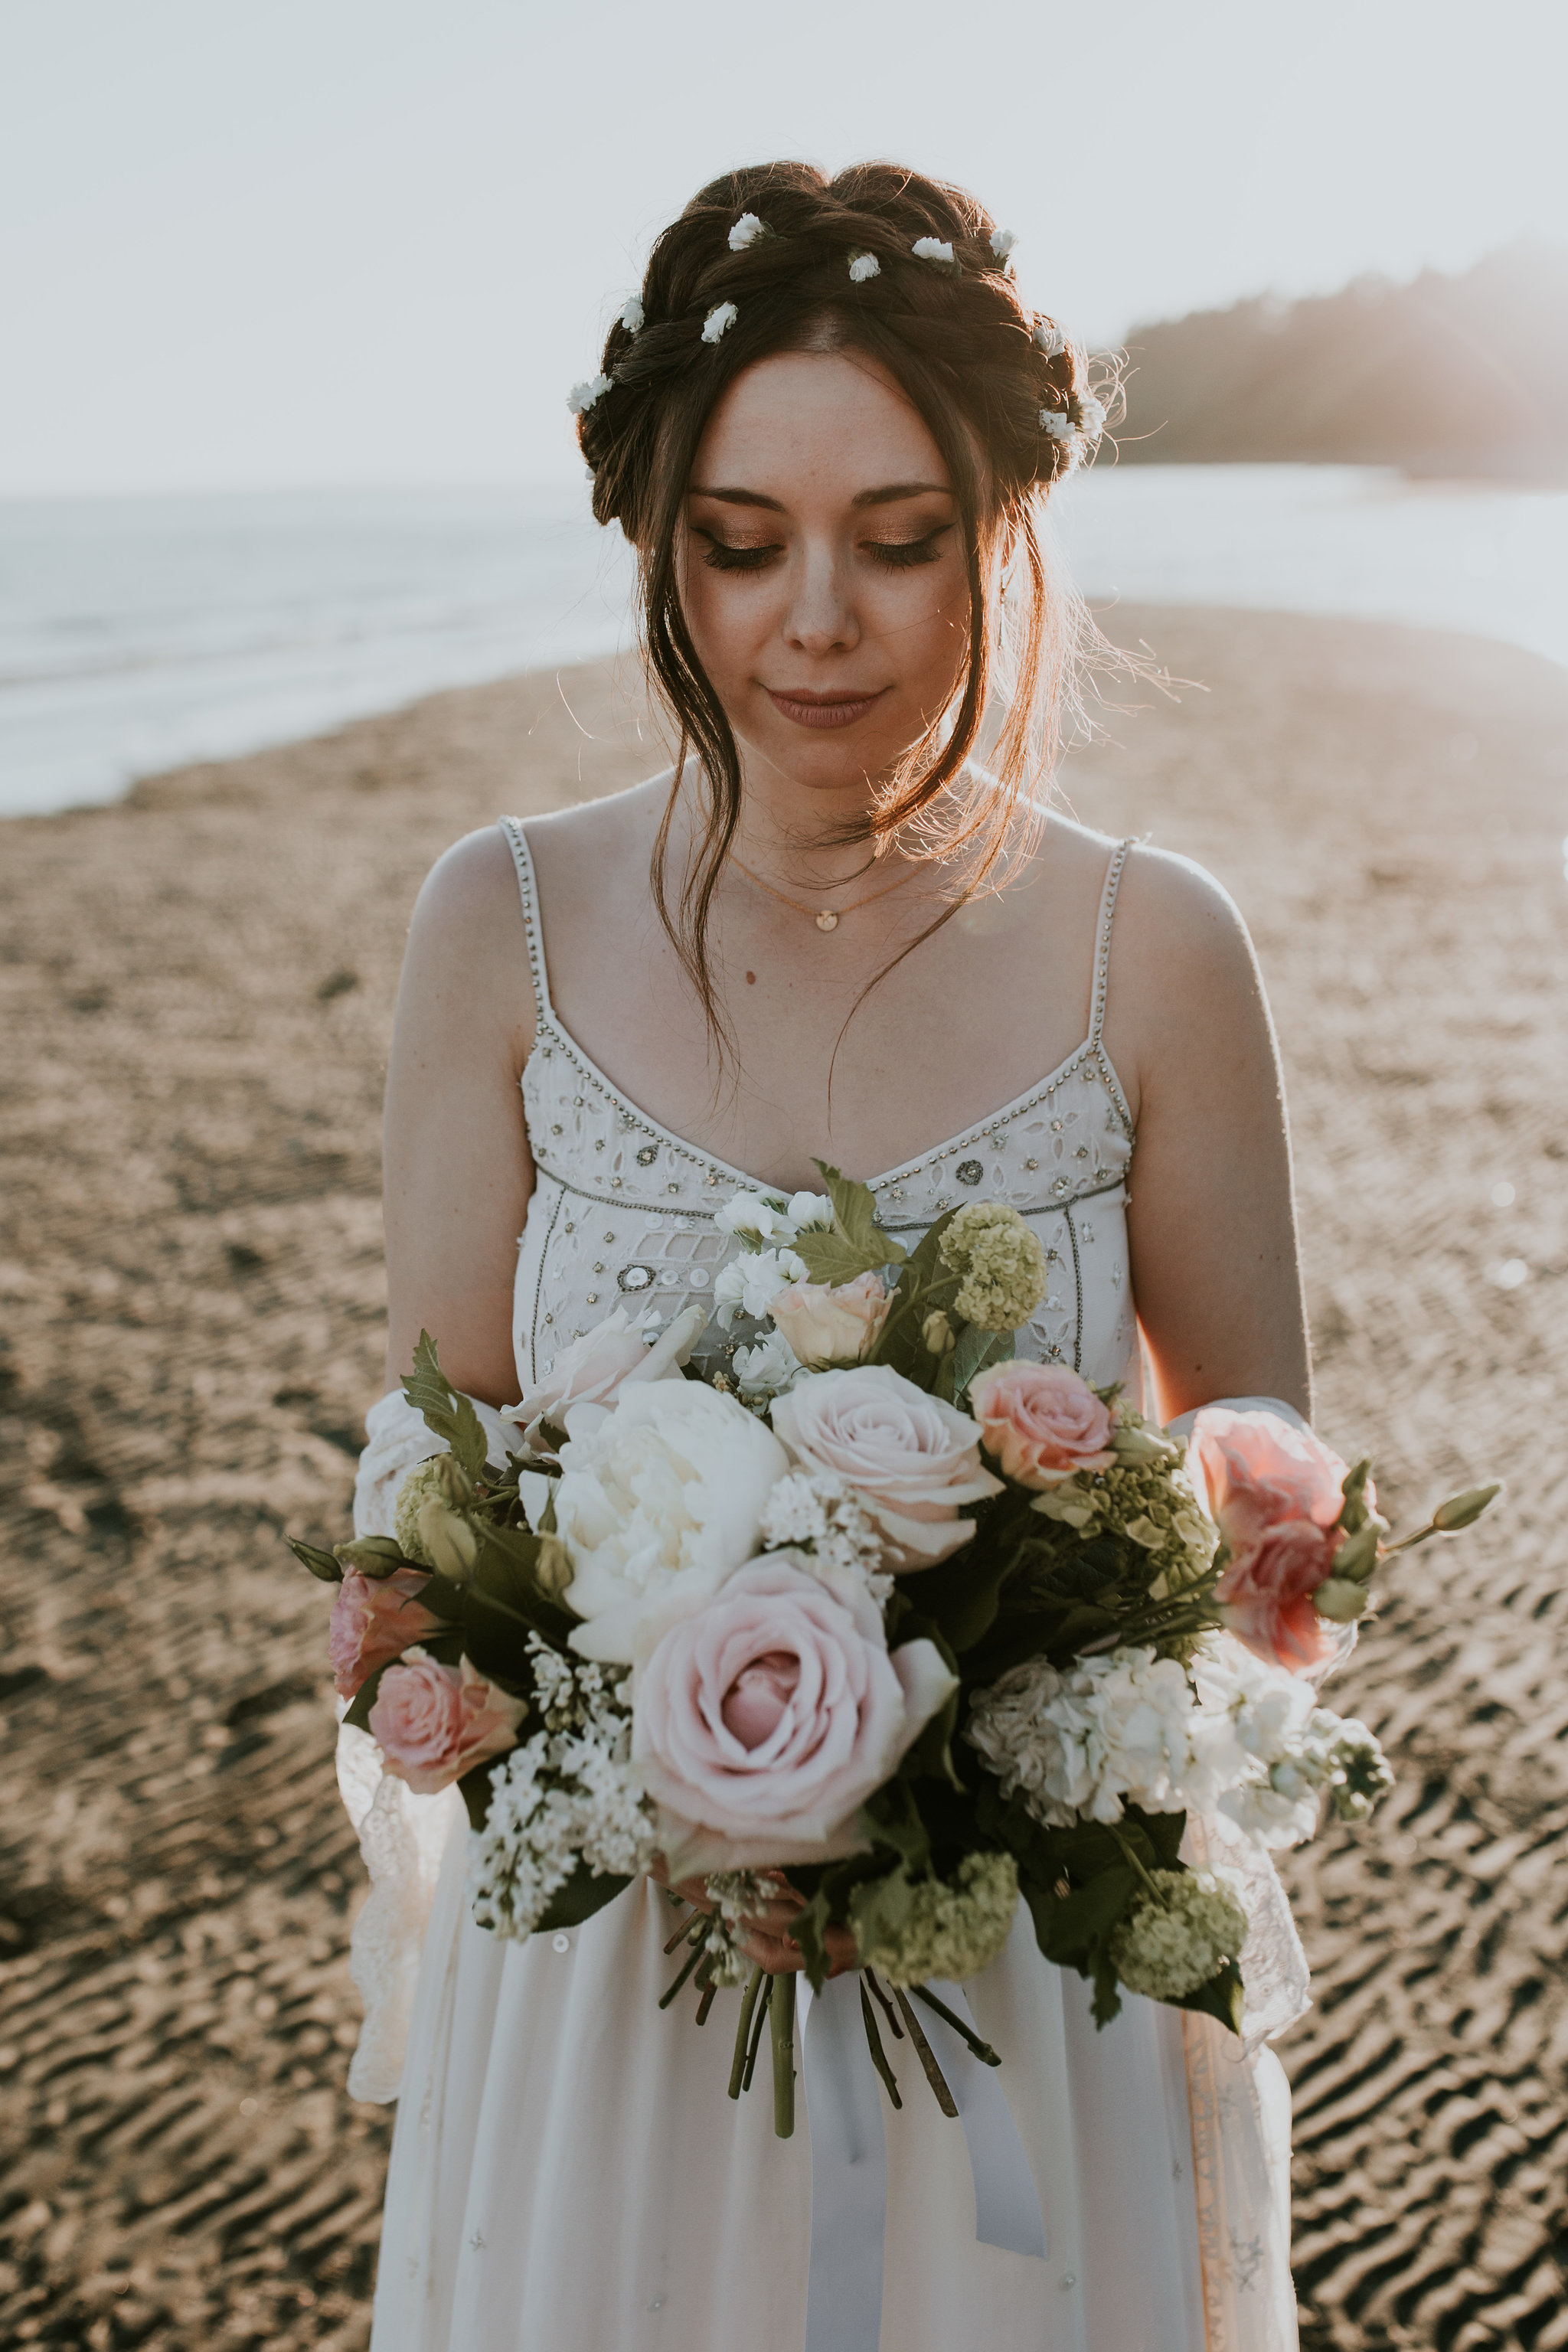 The dress, a thrift store find bought one week before her wedding, was the perfect fit for this beautiful bride.